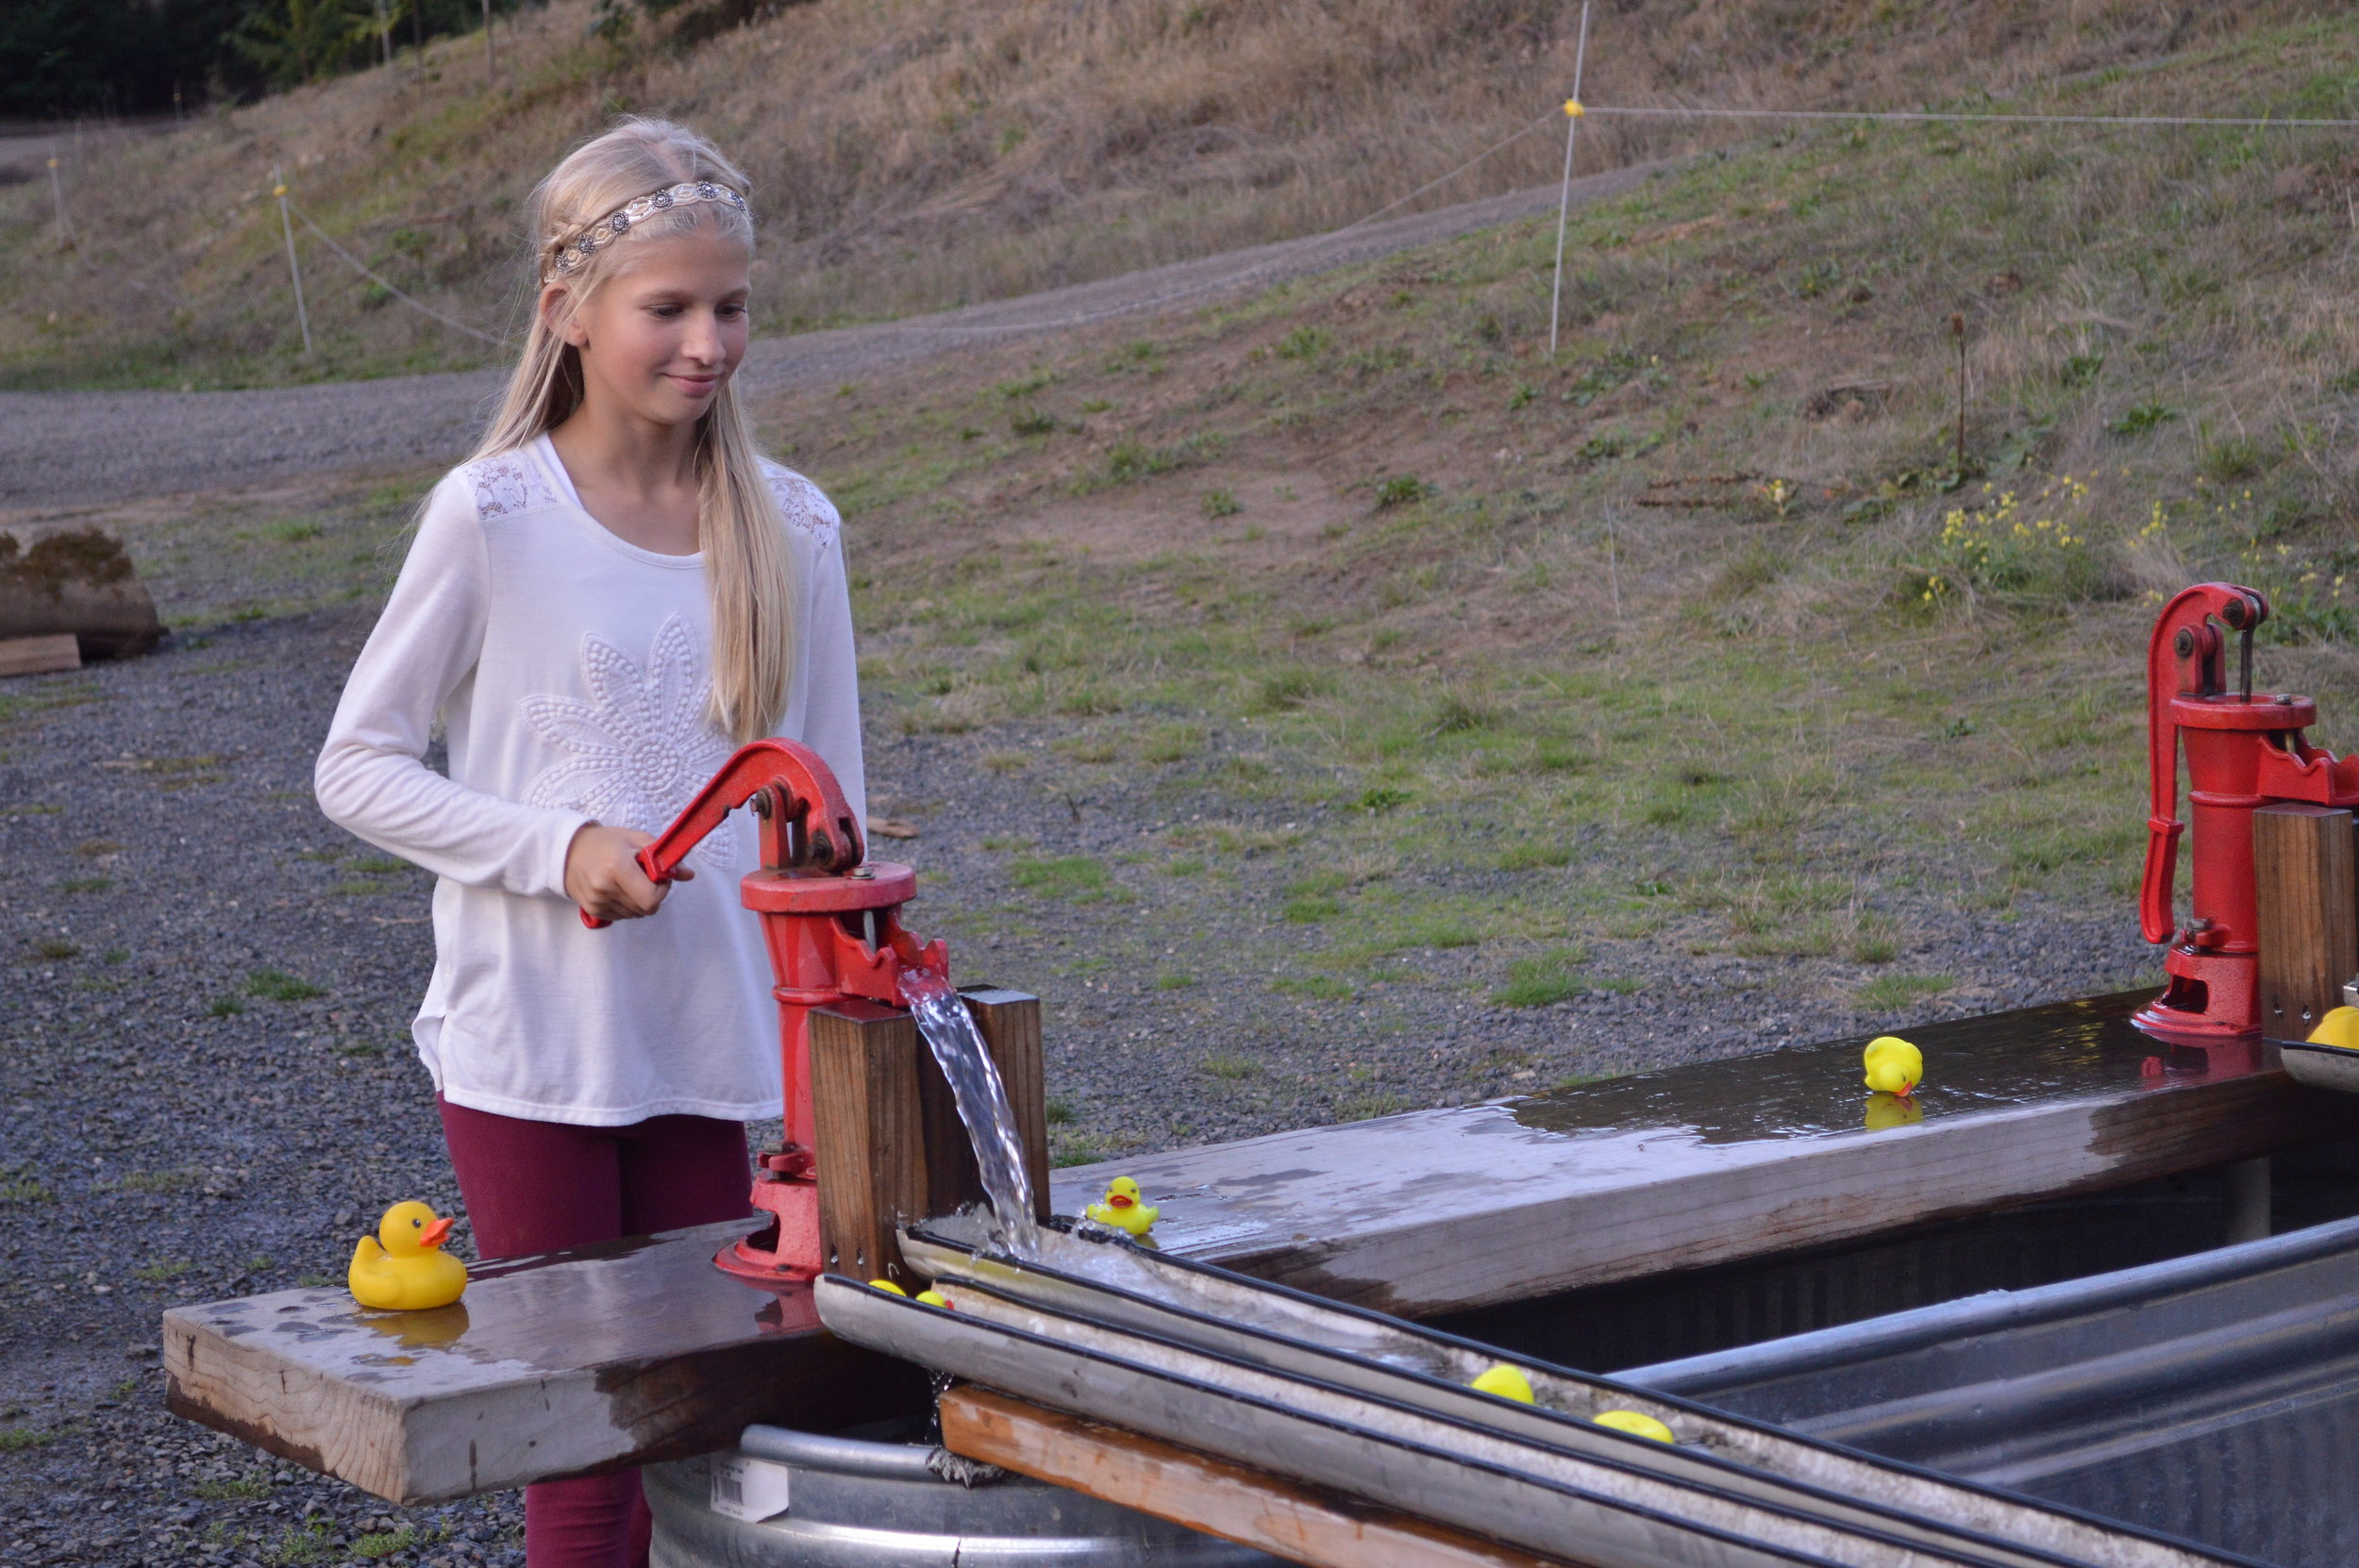 Brynne Hathorn races rubber duckies along the pipe by using a water pump system of the Mahaffey's own invention.